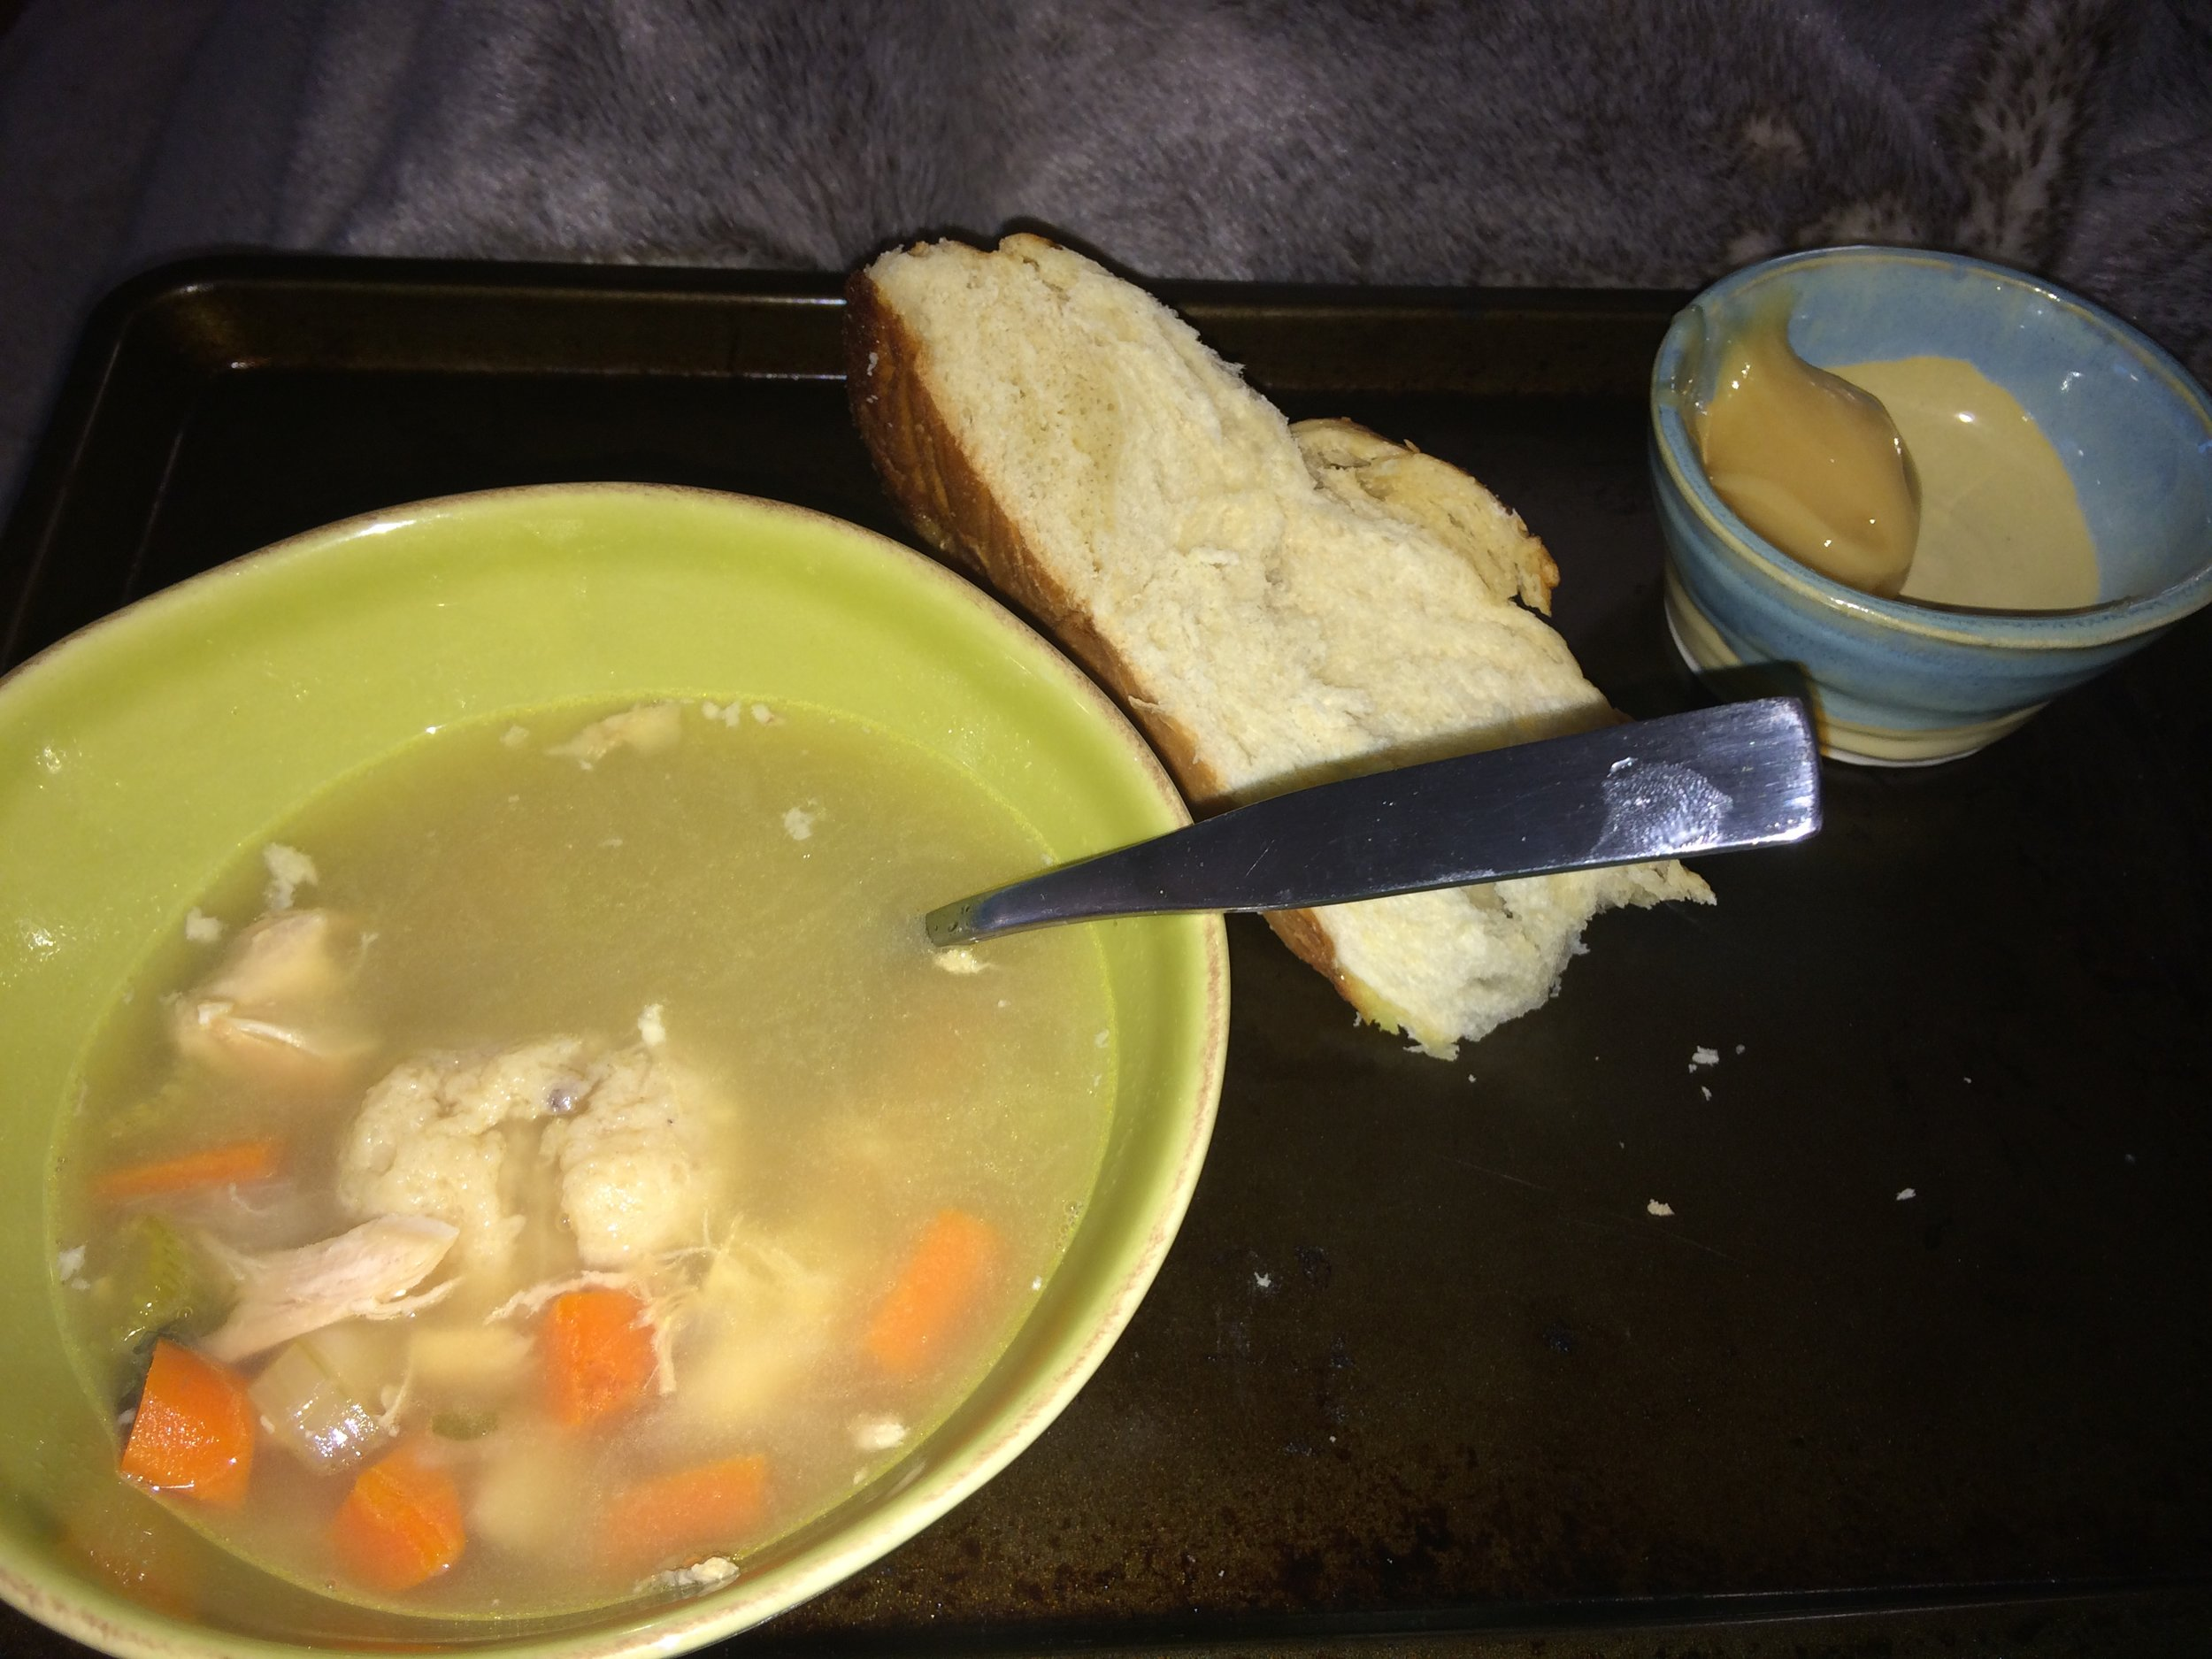 My mom stayed with us after I had hip surgery in August 2015, and of course made Matzo Ball Soup.